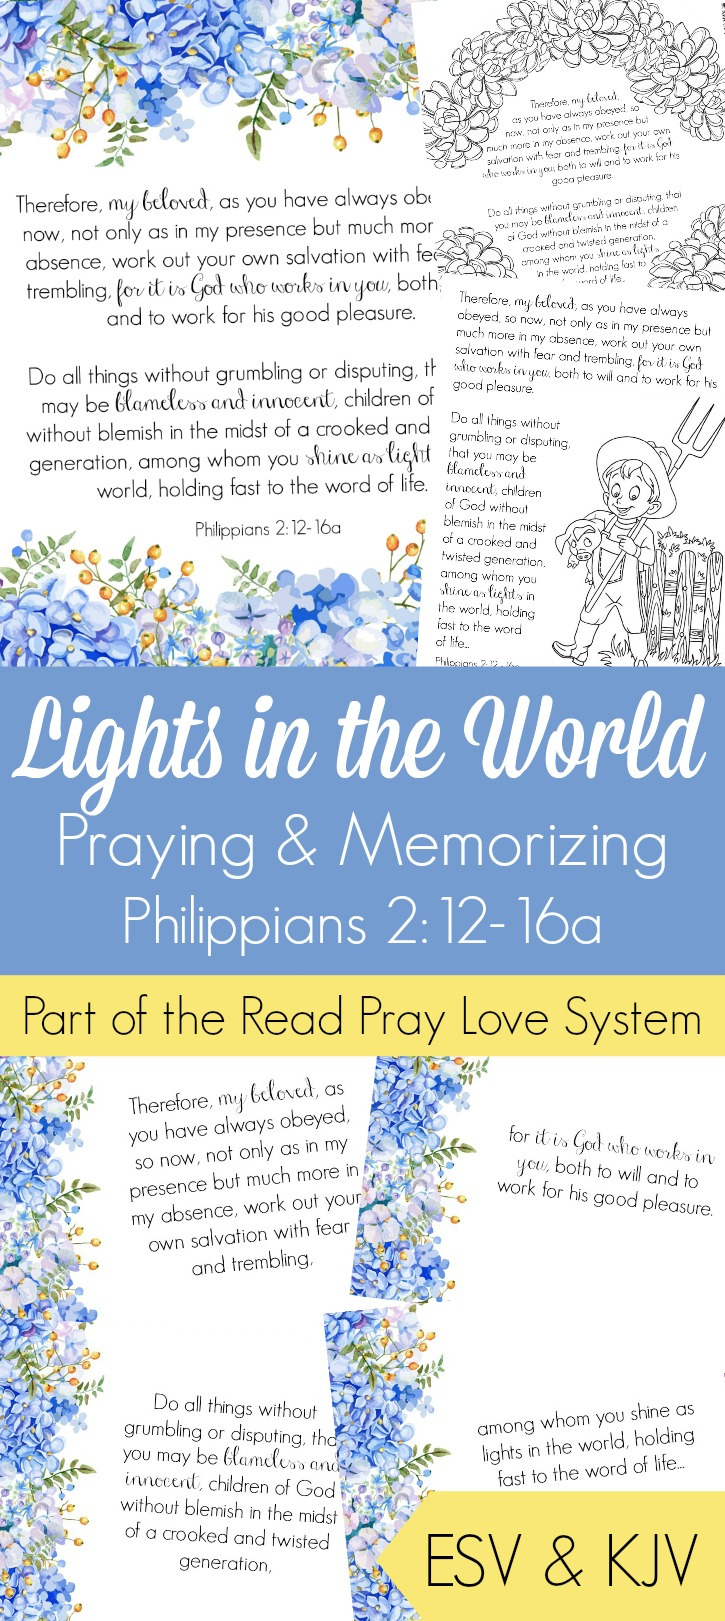 Lights in the World Praying and Memorizing Philipians 2:12-16a